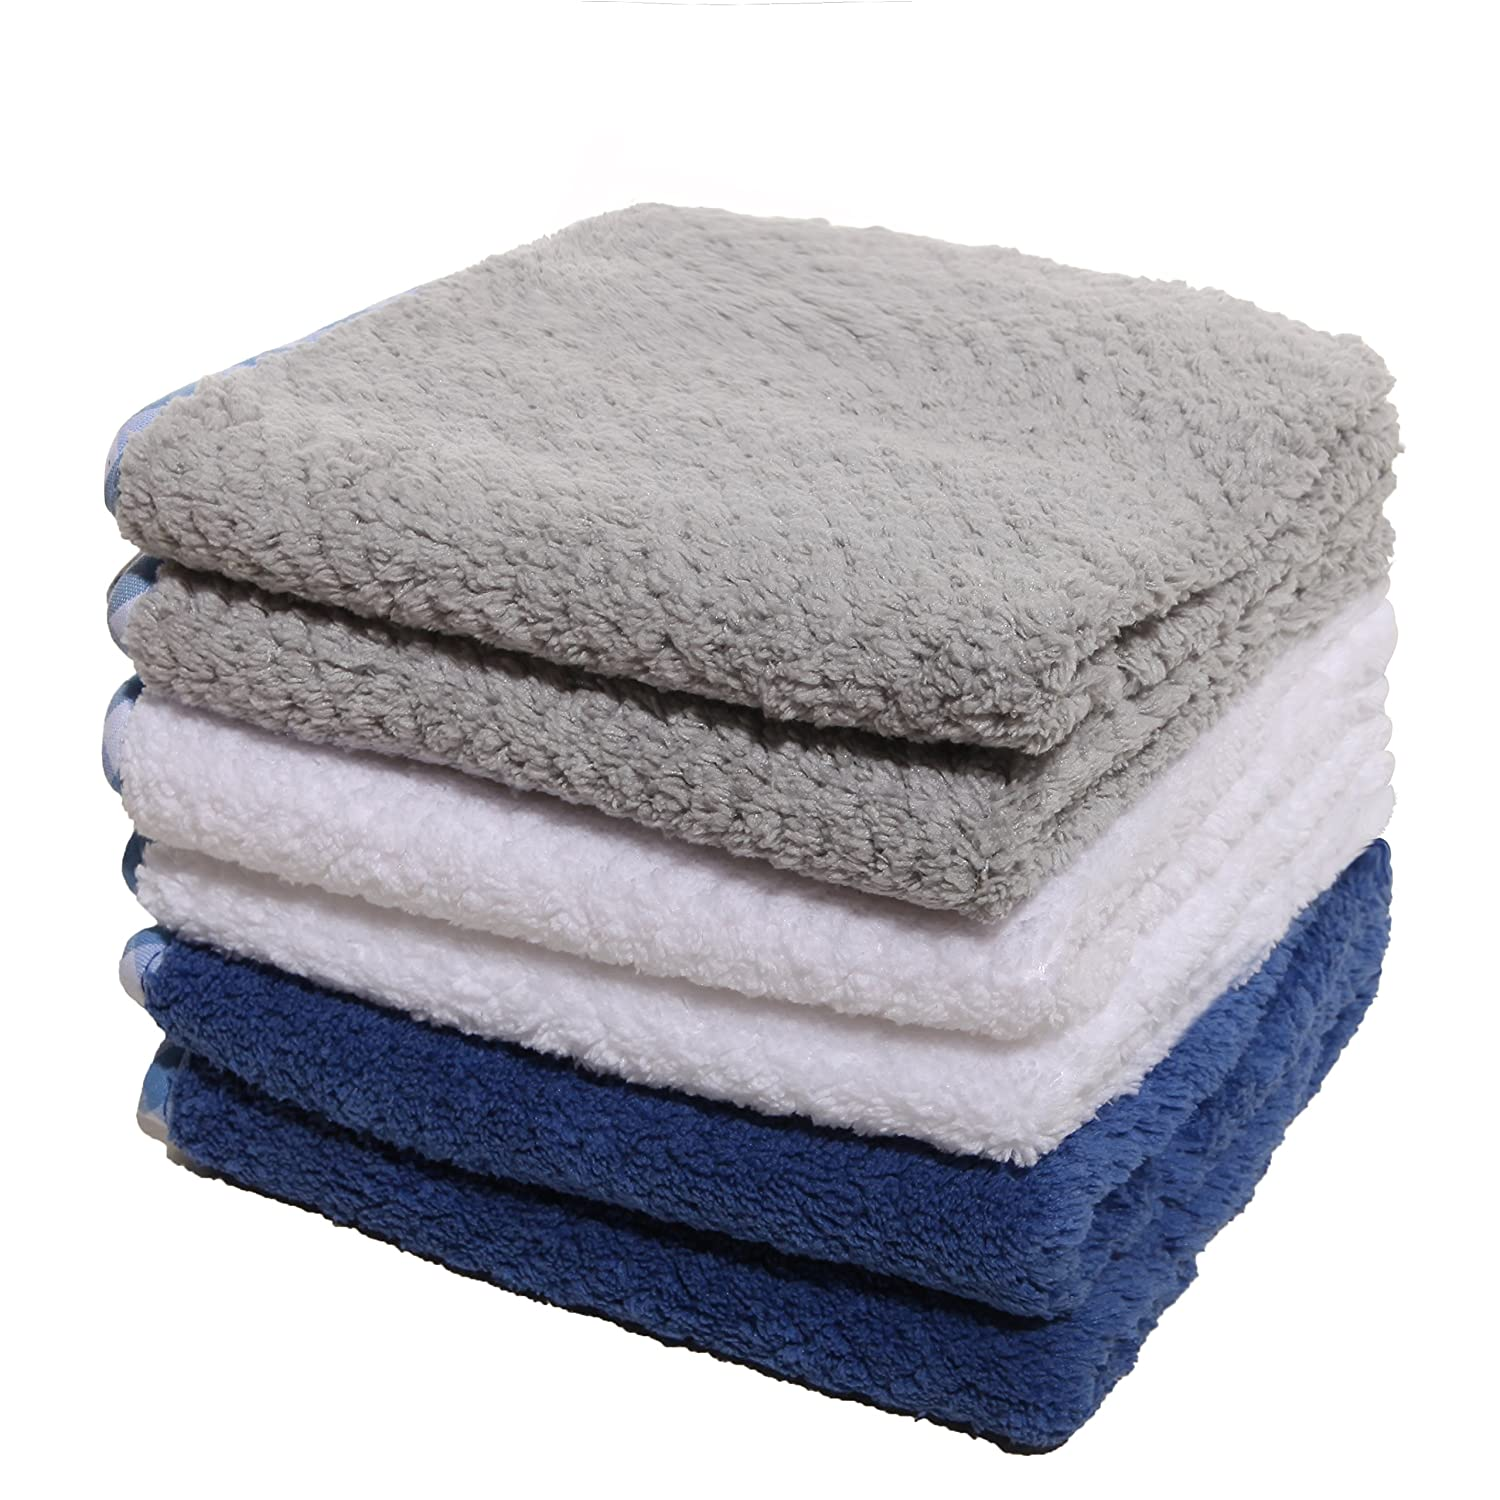 Luckiss Plush Microfiber Dish Cloths Ultra Absorbent Quick Dry Kitchen Rags For Drying And Washing Dishes Soft Durable Cleaning Dust Cloths 12 X 12